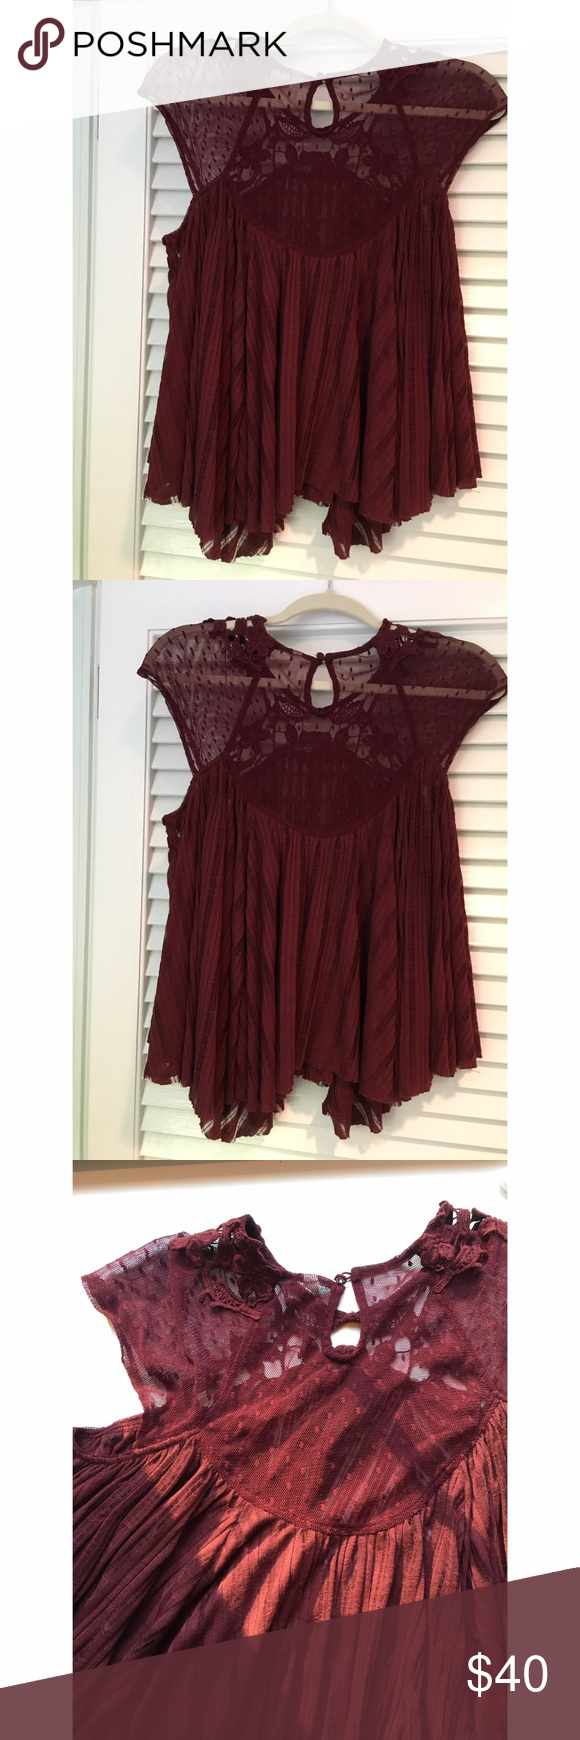 Free people lace blouse Burgundy lace blouse from free people. Beautiful lace detailing and floral embroidery. Keyhole back. In great condition and perfect for summer! Free People Tops Blouses